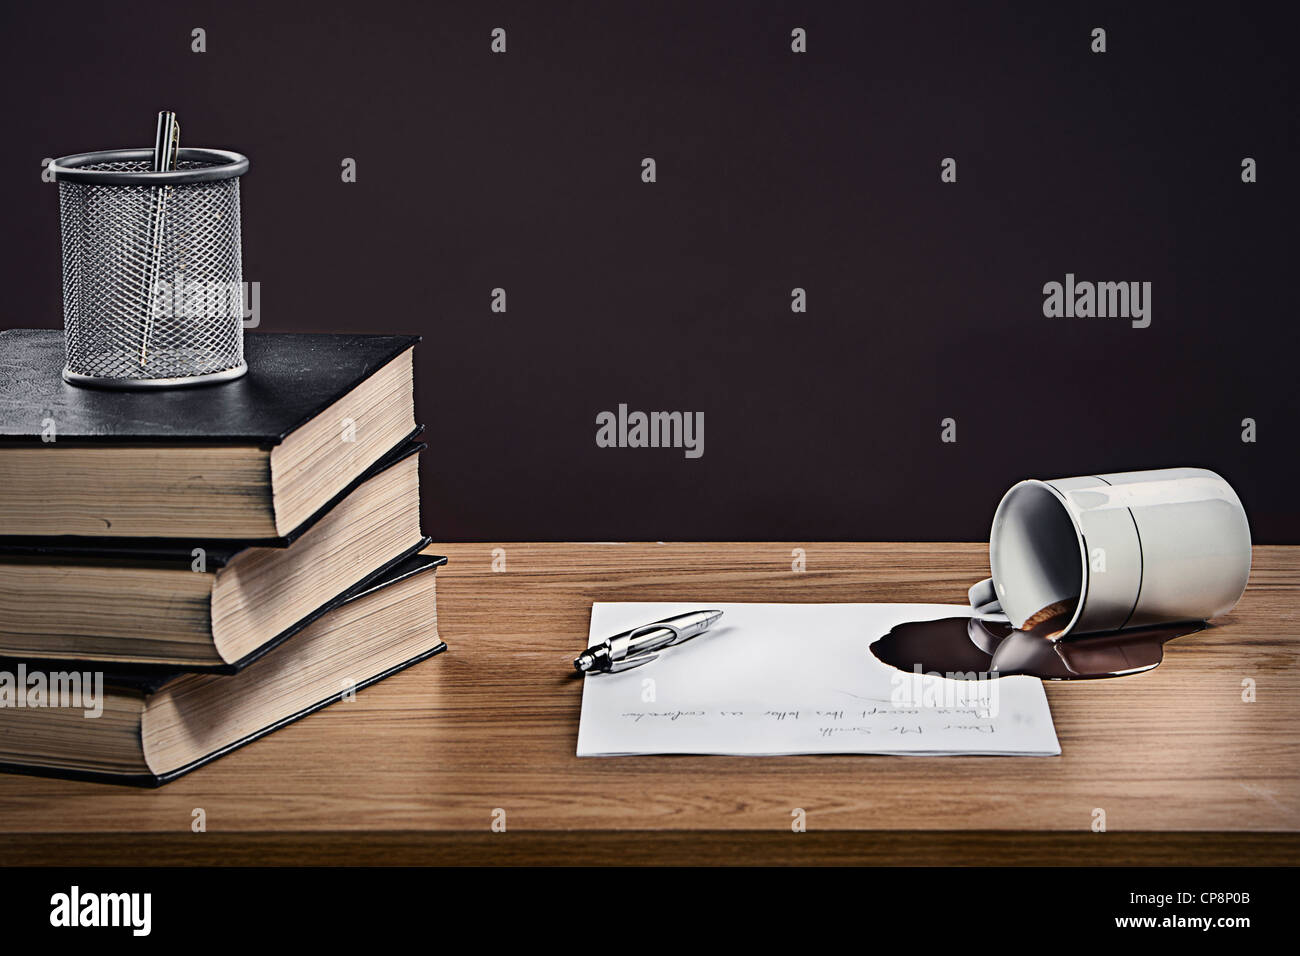 Coffee spilled over letter on desk - Stock Image